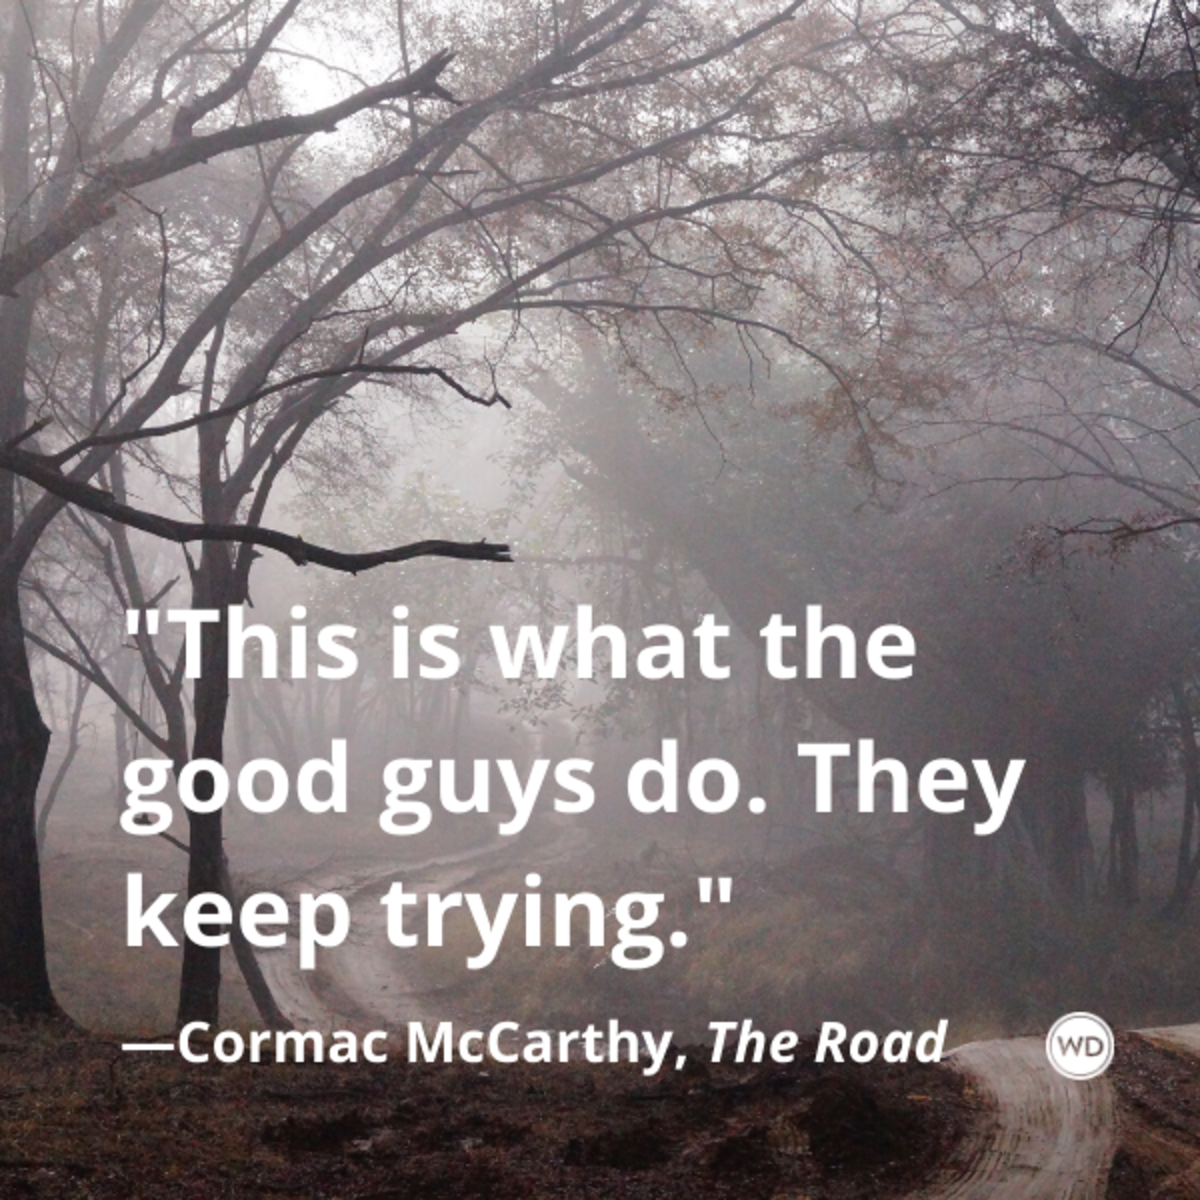 cormac_mccarthy_the_road_quotes_this_is_what_the_good_guys_do_they_keep_trying